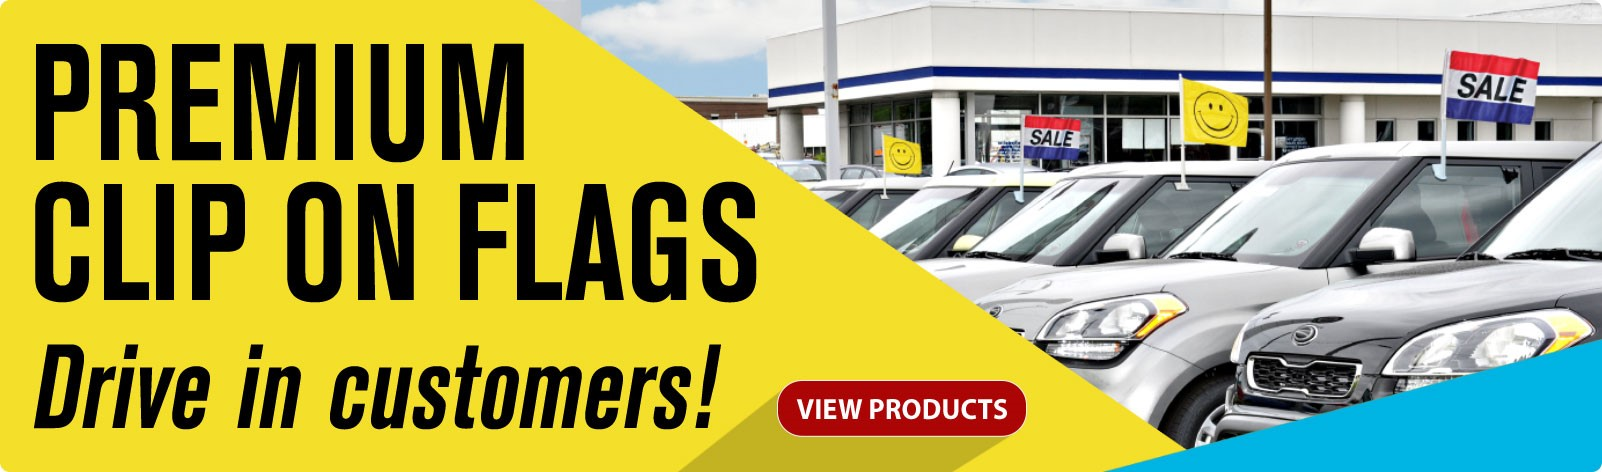 Drive in customers with our Premium Clip On Flags!